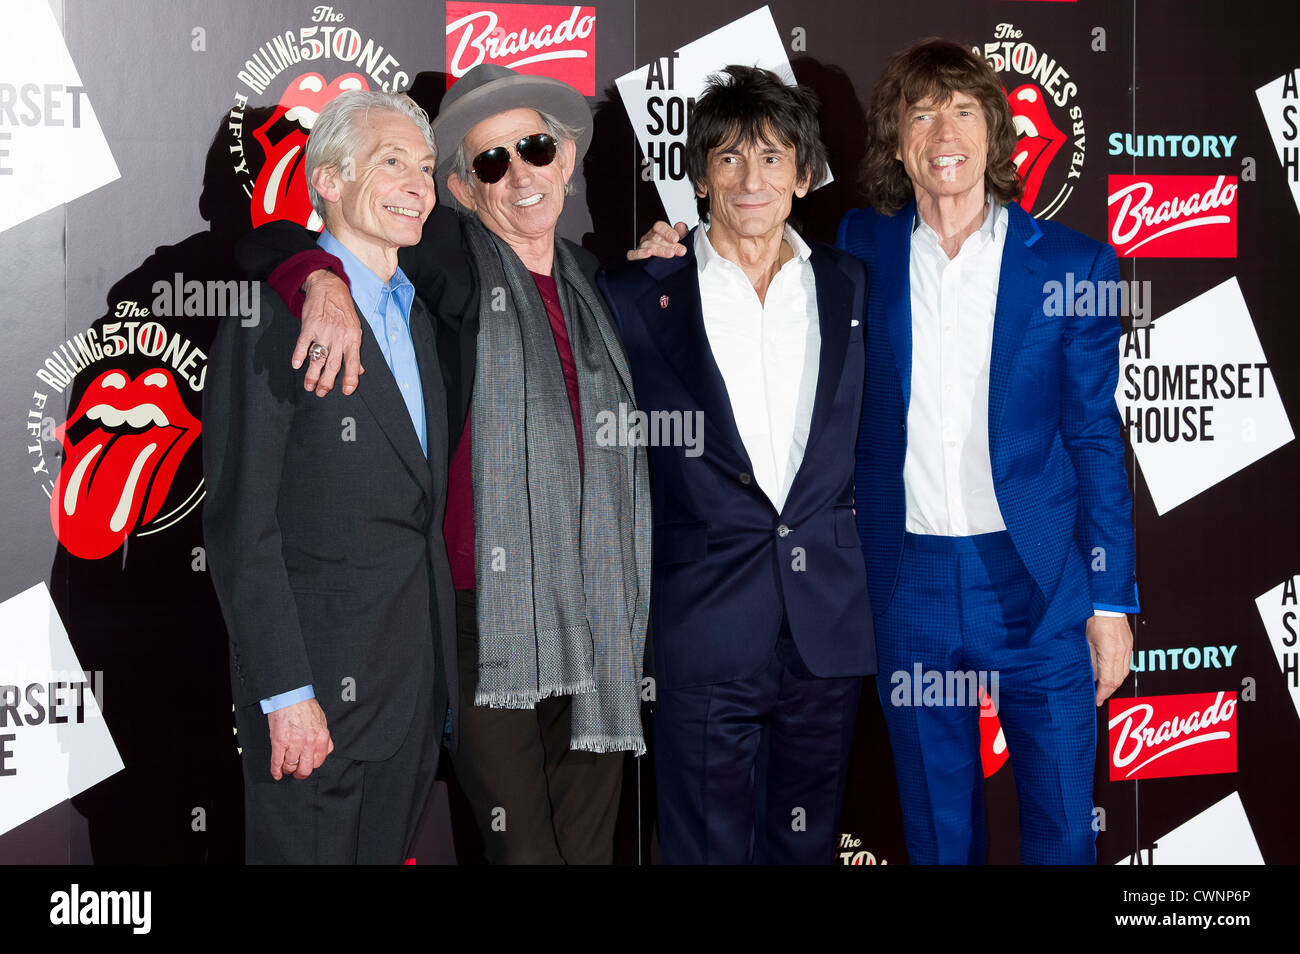 Charlie Watts, Keith Richards, Ronnie Wood and Mick Jagger, from the British Rock band, The Rolling Stones. - Stock Image